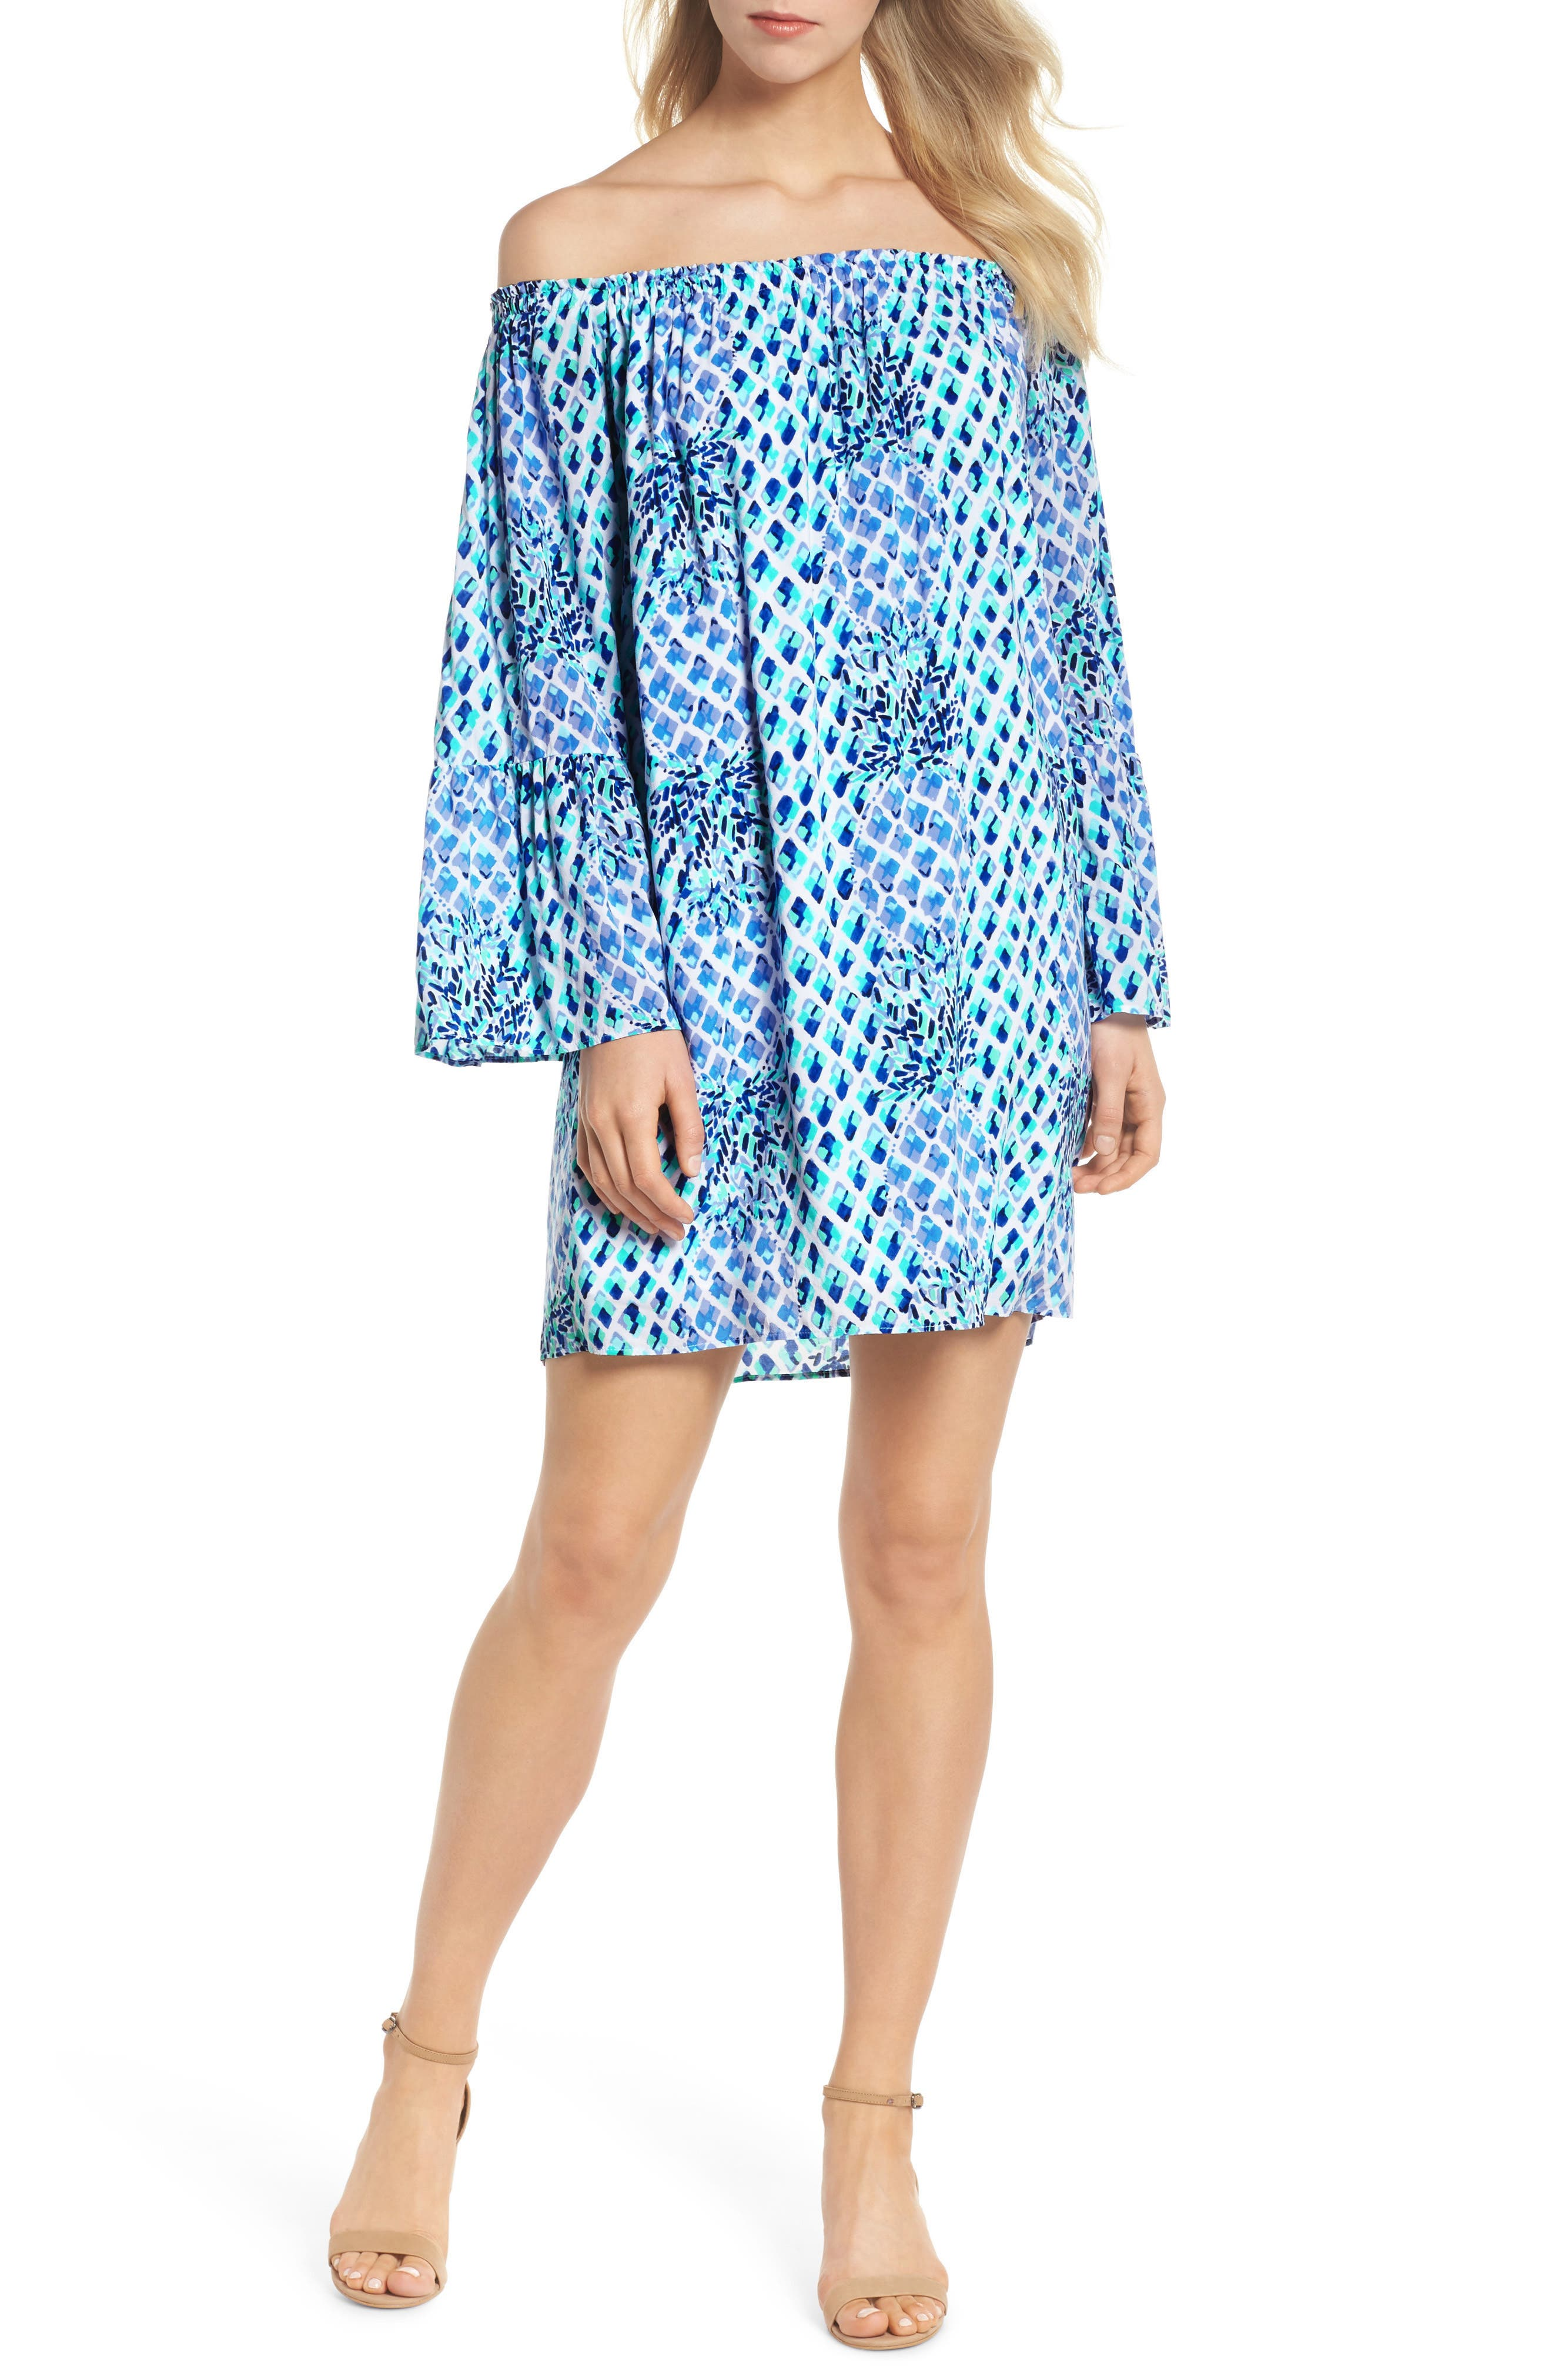 Lilly Pullitzer<sup>®</sup> Nevie Off the Shoulder Dress,                         Main,                         color,